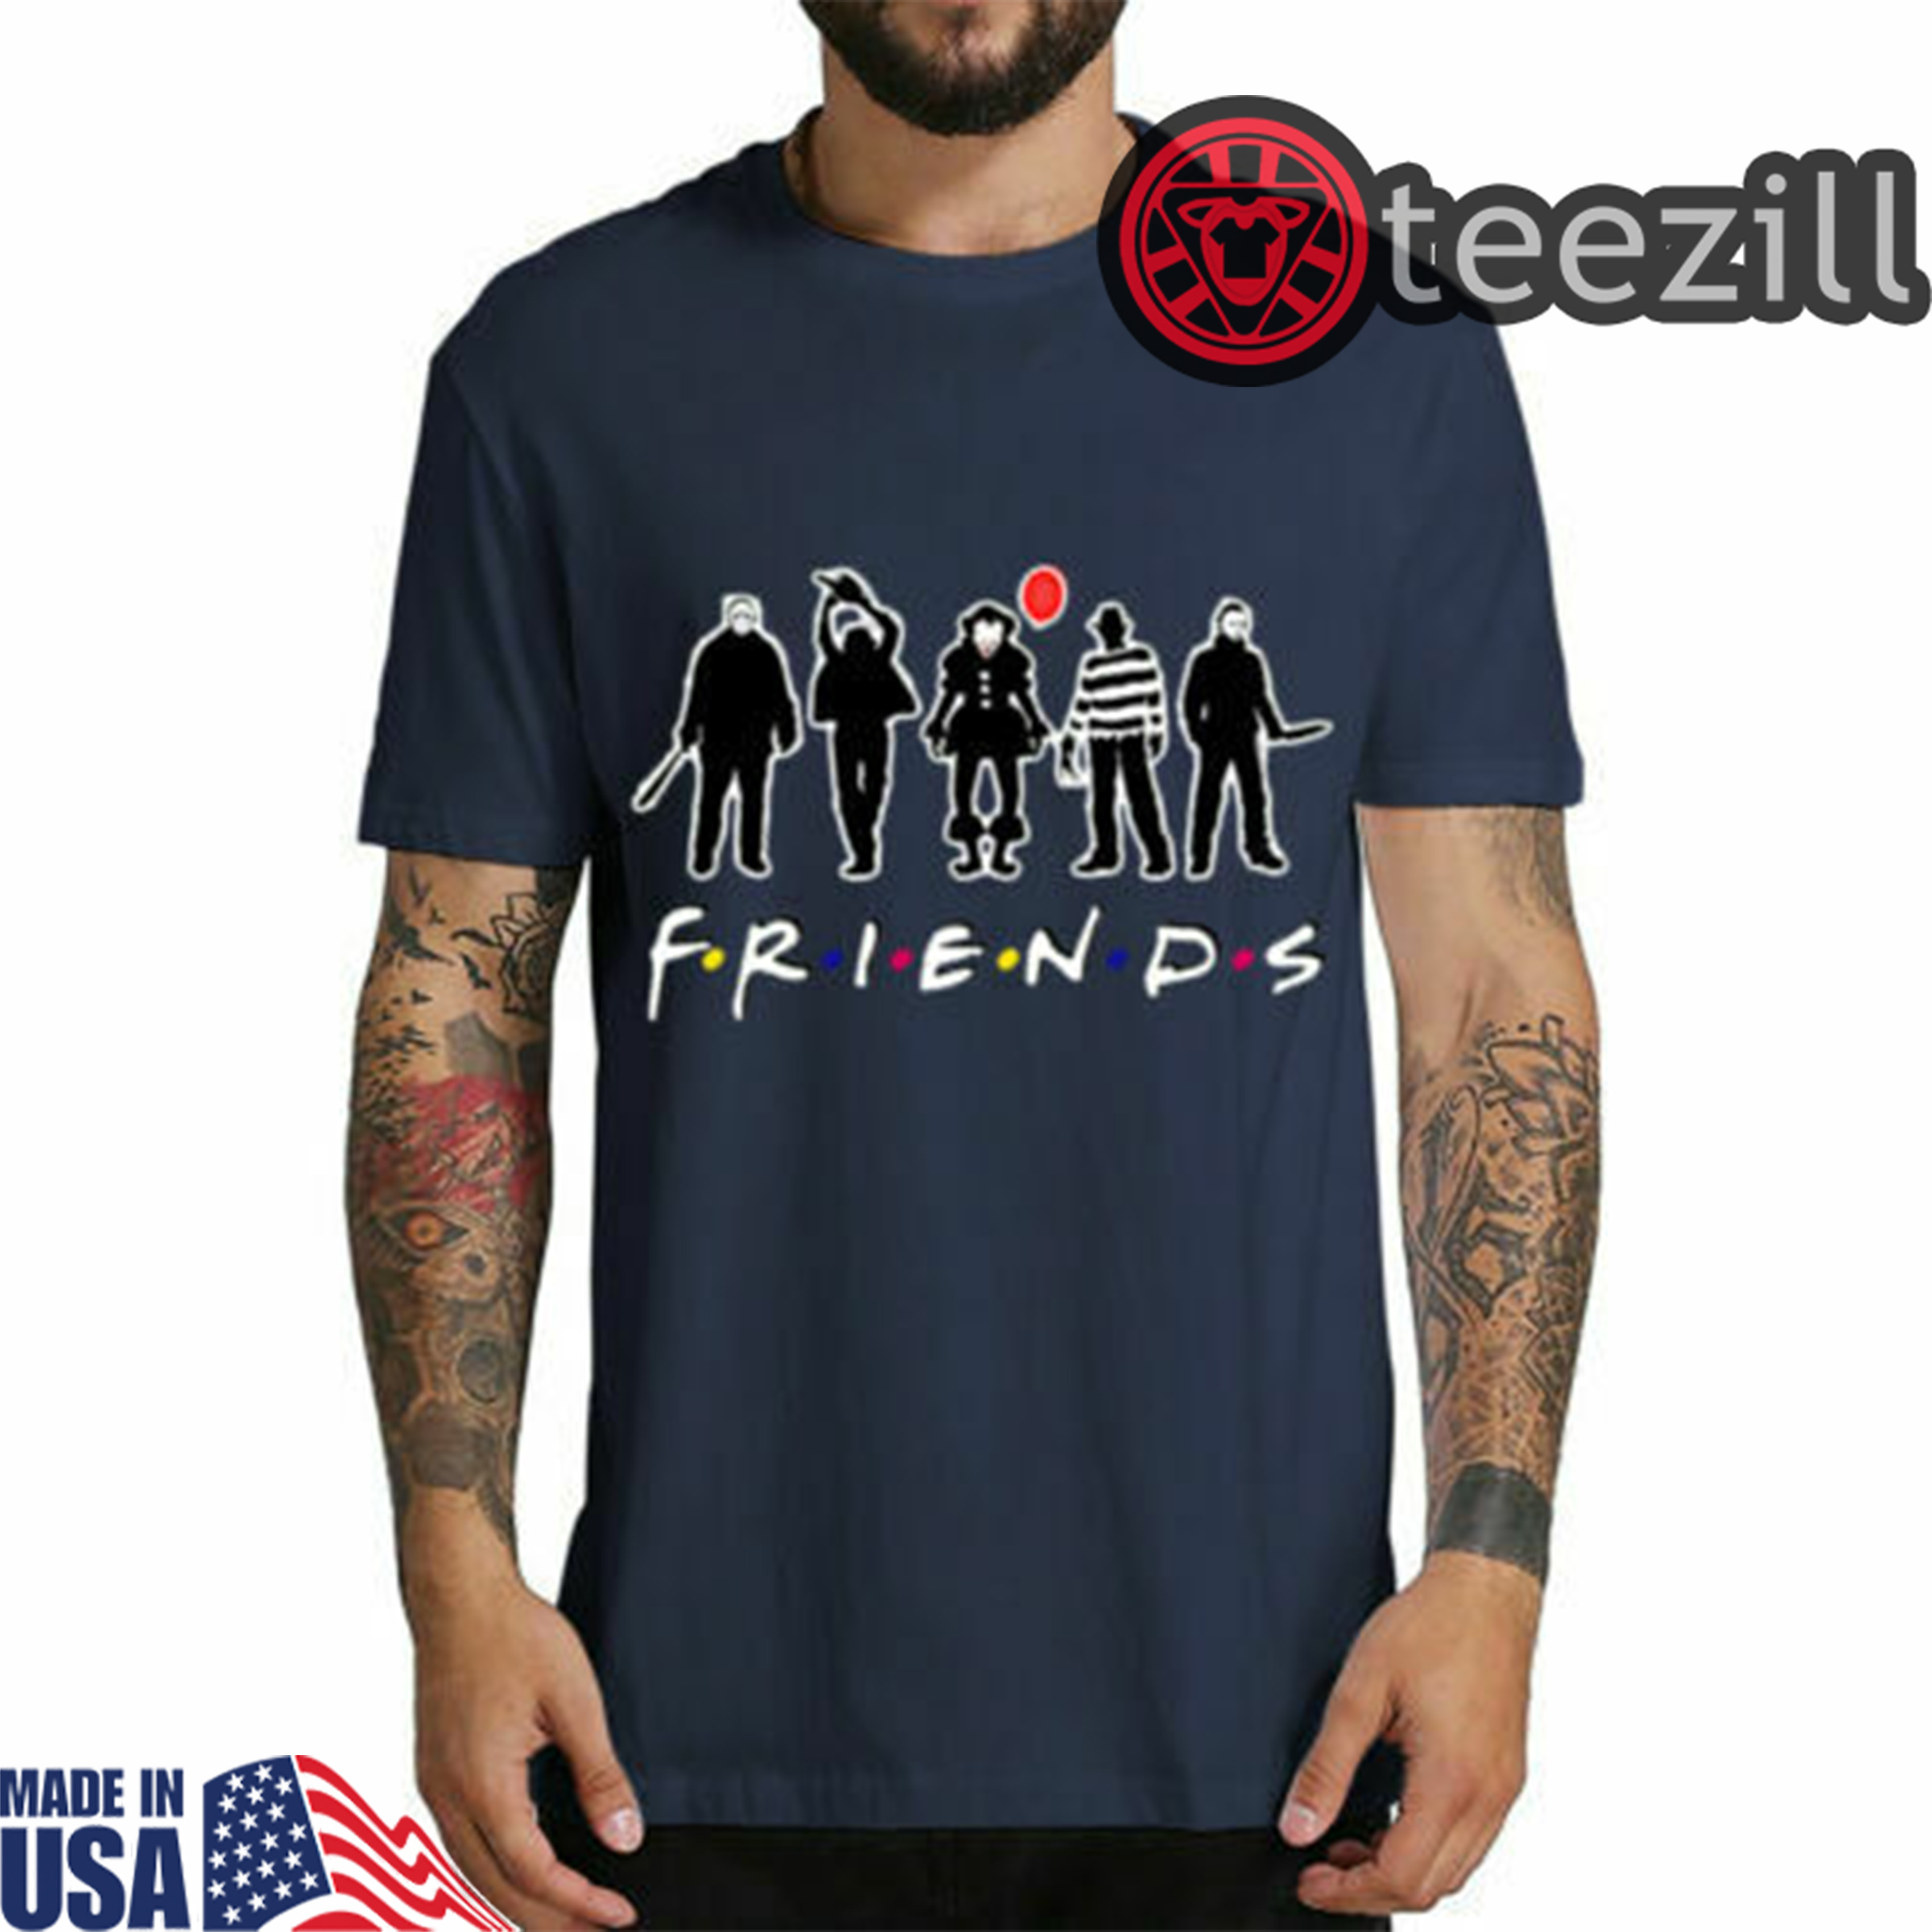 Halloween Friends Shirt.Horror Friends Shirt Pennywise Michael Myers Jason Voorhees T Shirt Halloween